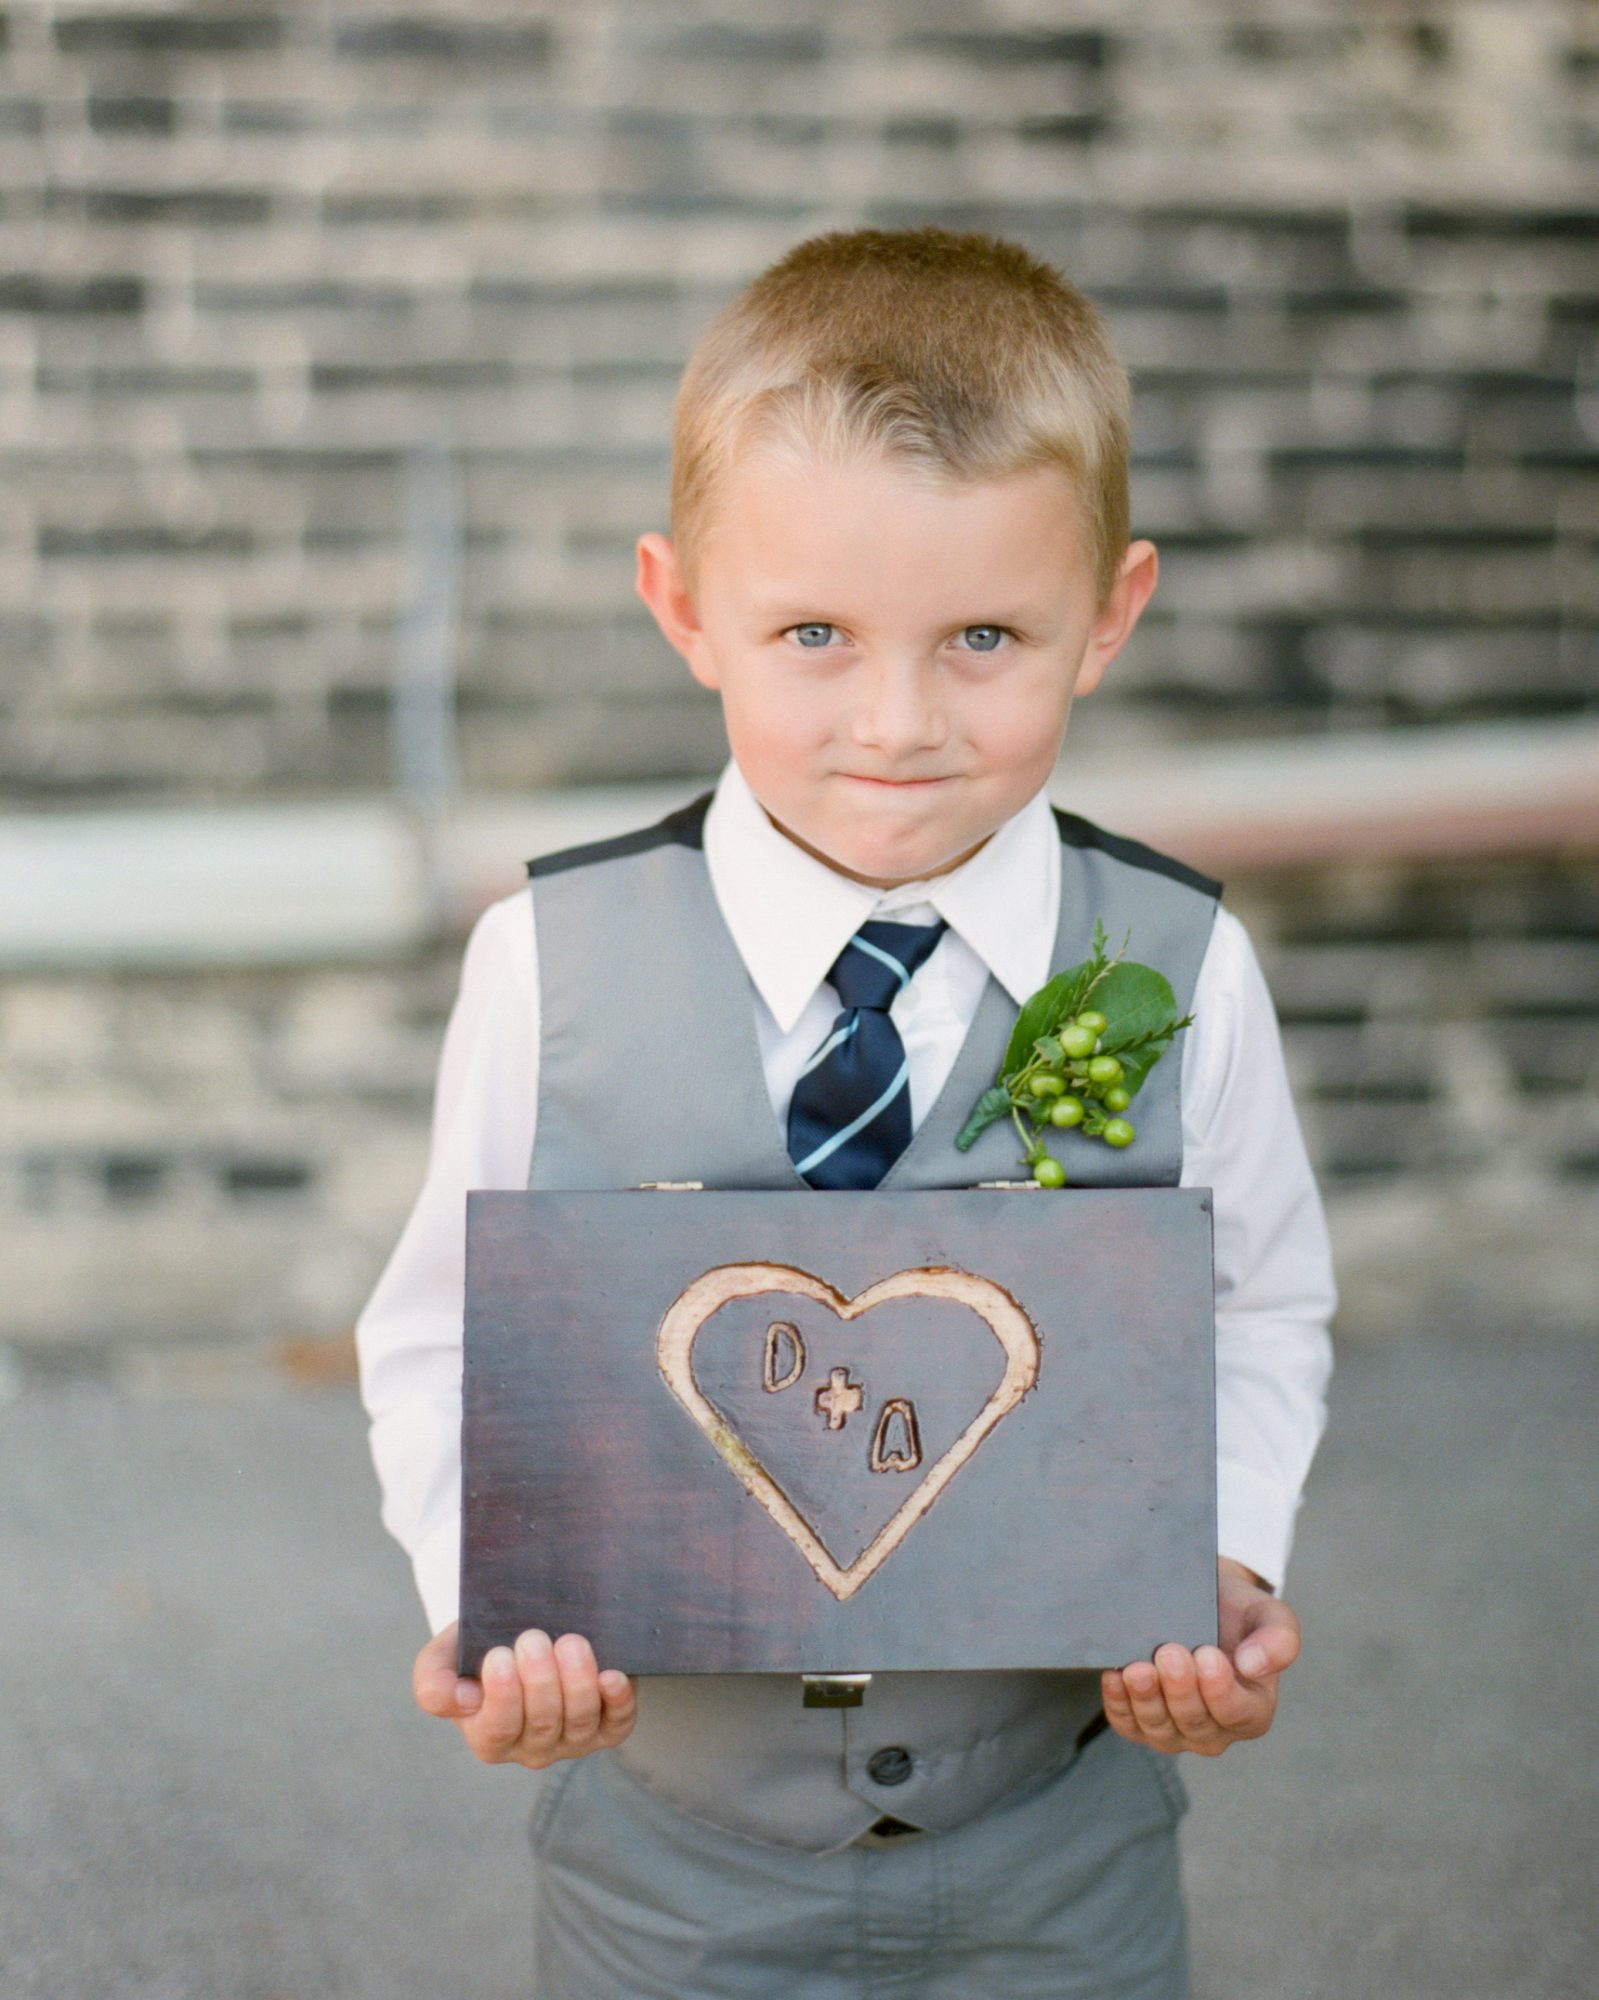 anna-don-wedding-ringbearer-0614.jpg